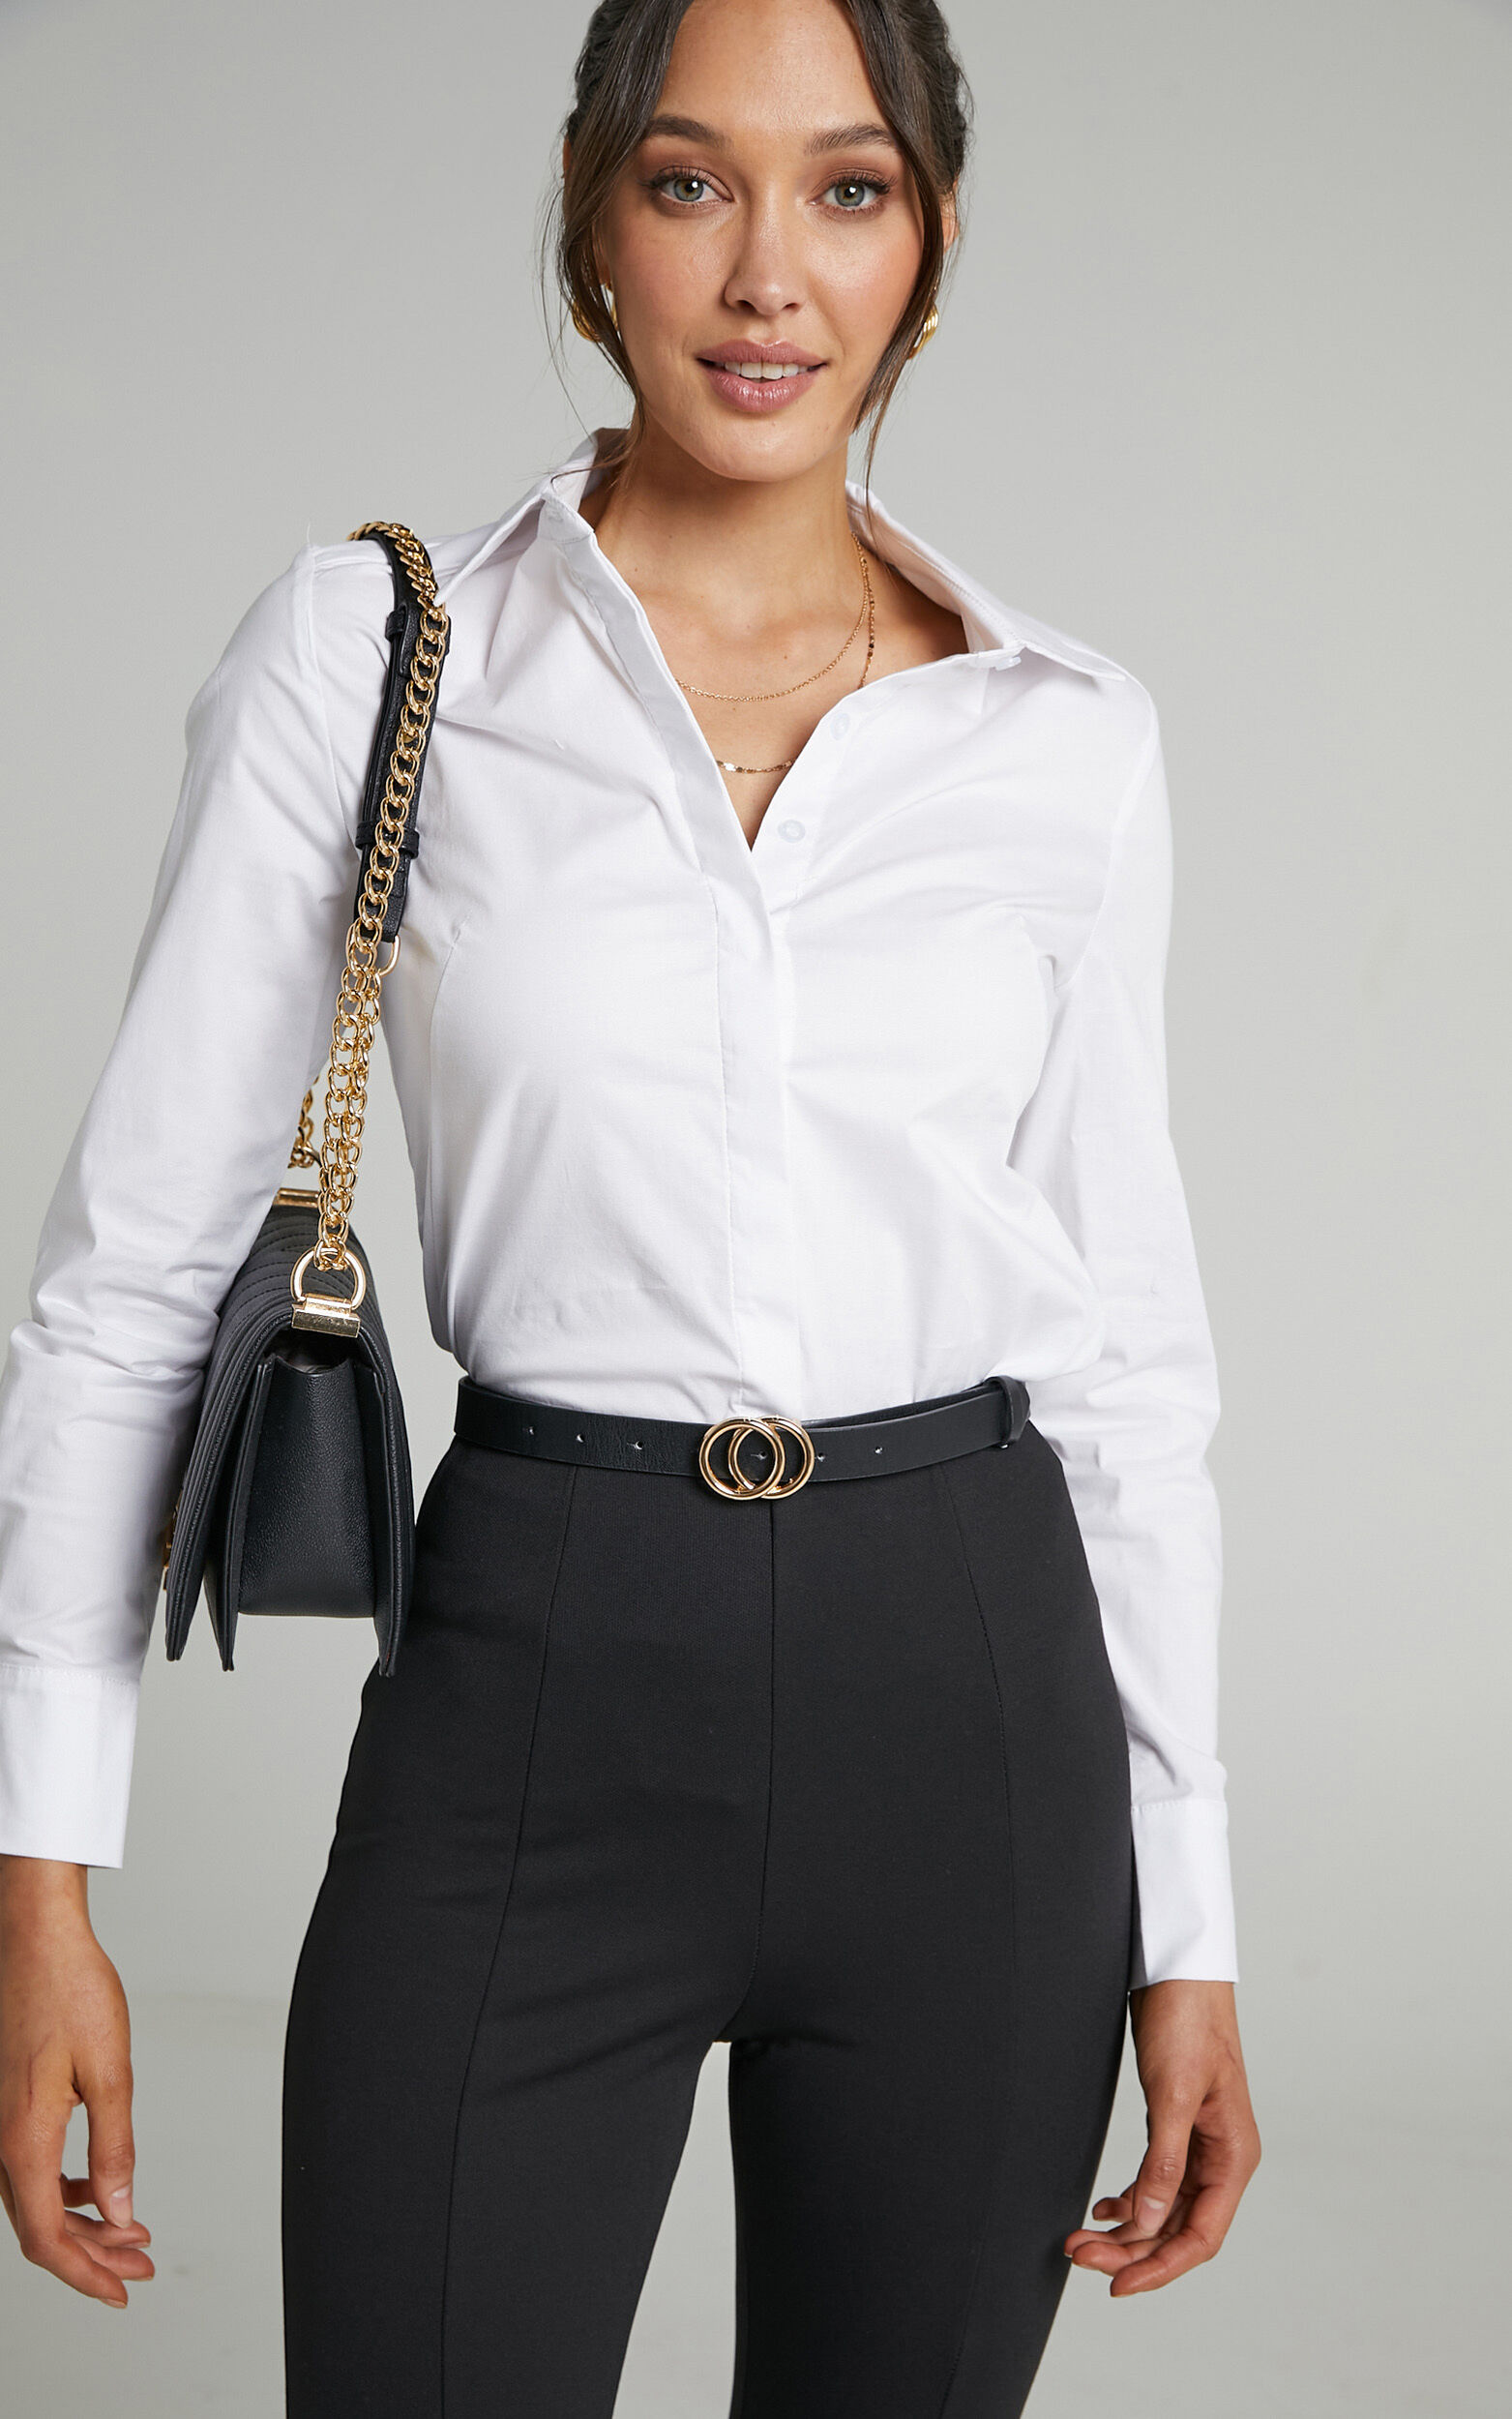 Briannon Longsleeve Fitted Collared Button Up Shirt in White - 06, WHT1, super-hi-res image number null